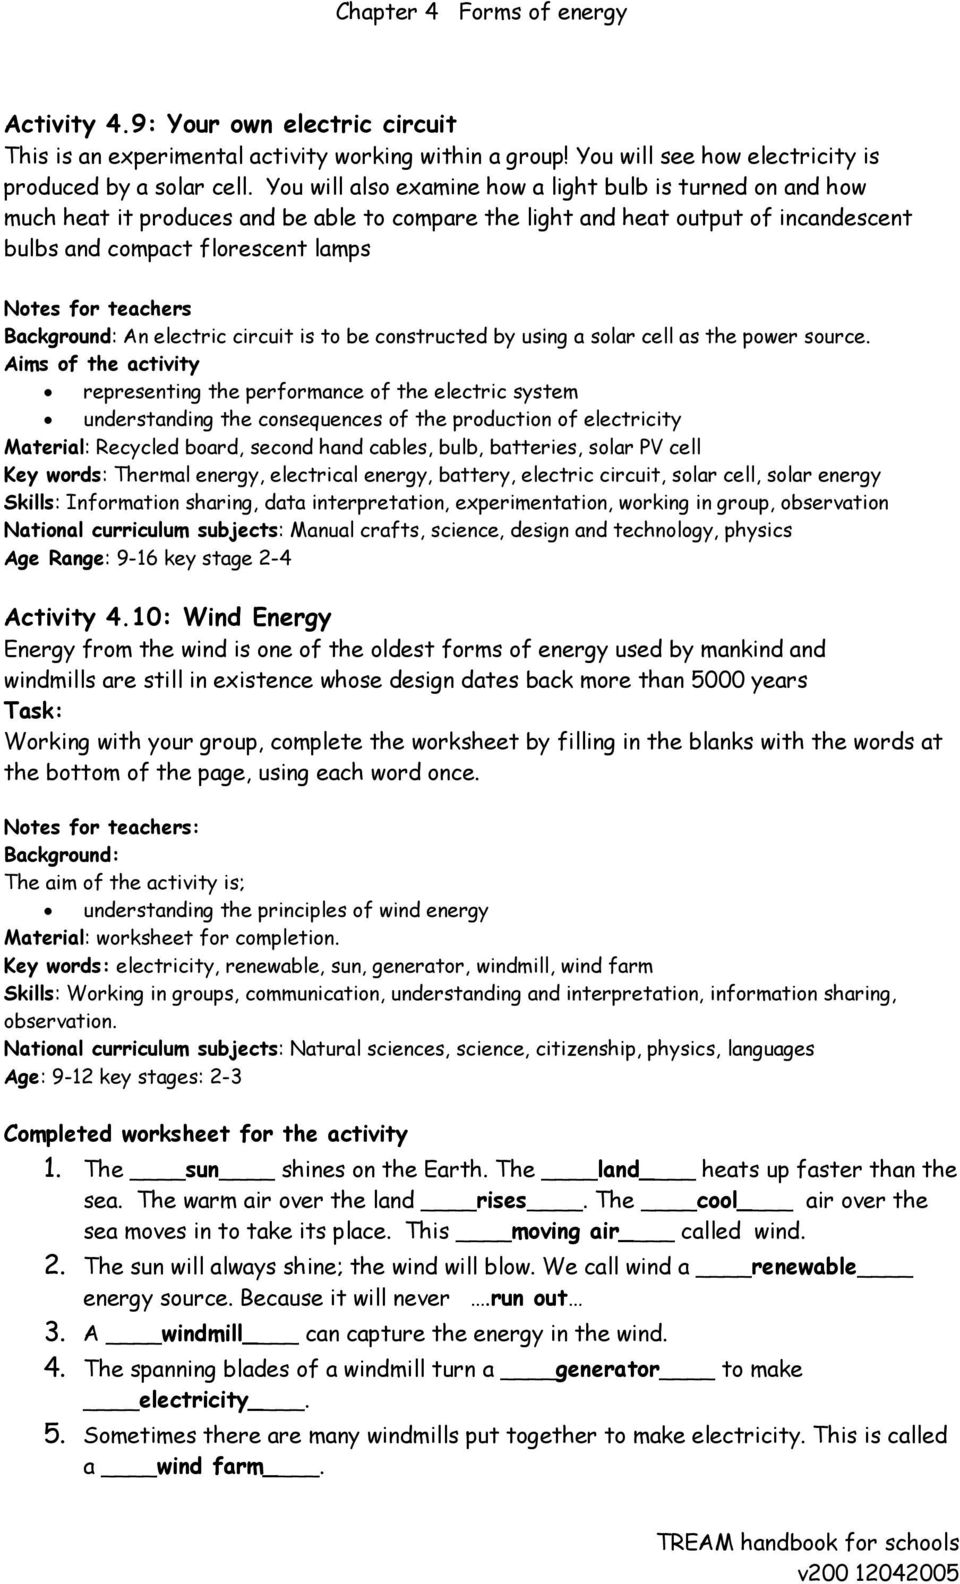 worksheet Chapter 9 Energy In A Cell Worksheet chapter 9 energy in a cell worksheet answers etfs teachers background an electric circuit is to be constructed by using solar as virtual cell